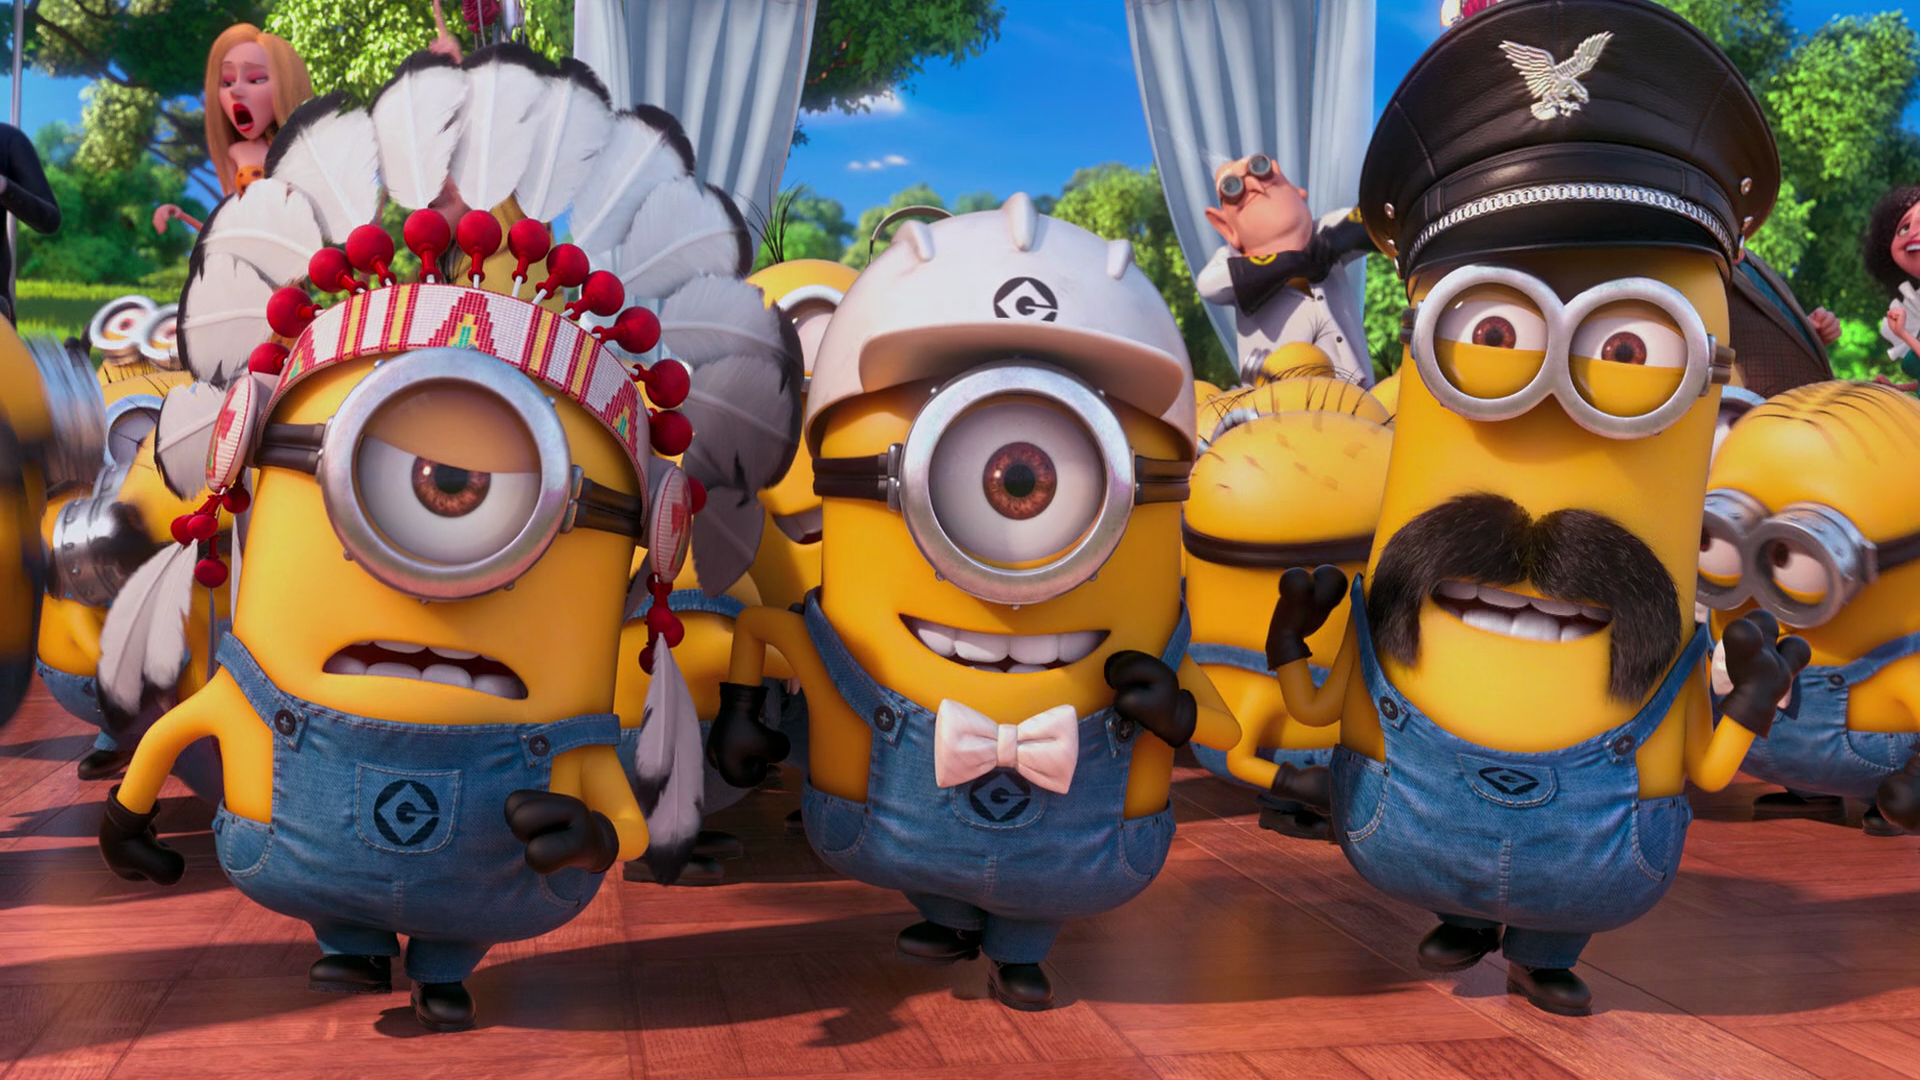 Despicable Me 2 HD Wallpaper | Background Image | 1920x1080 | ID:507980 - Wallpaper Abyss